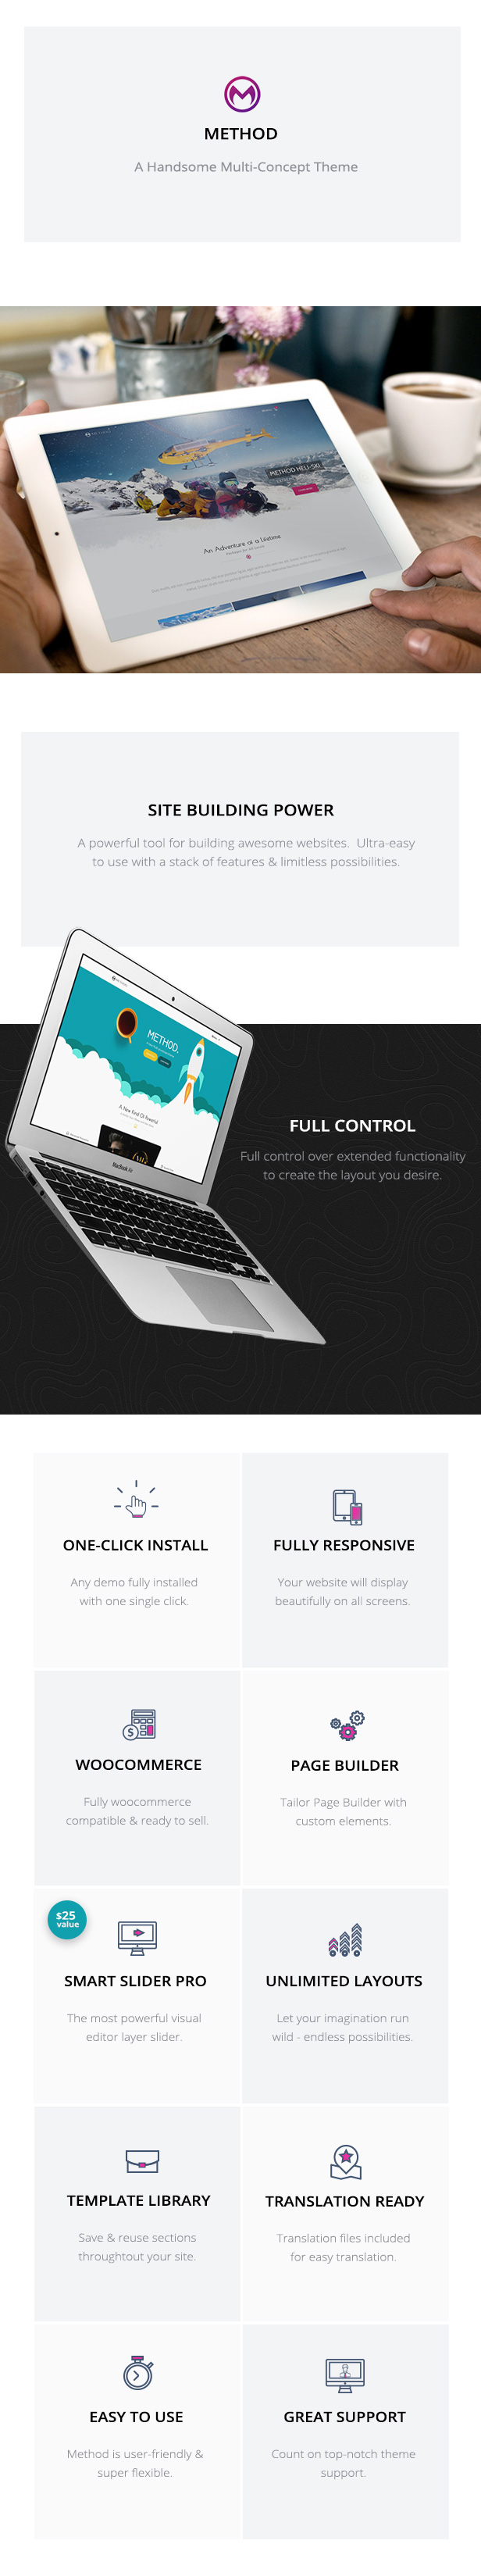 Method – Multi-concept site builder (Creative)